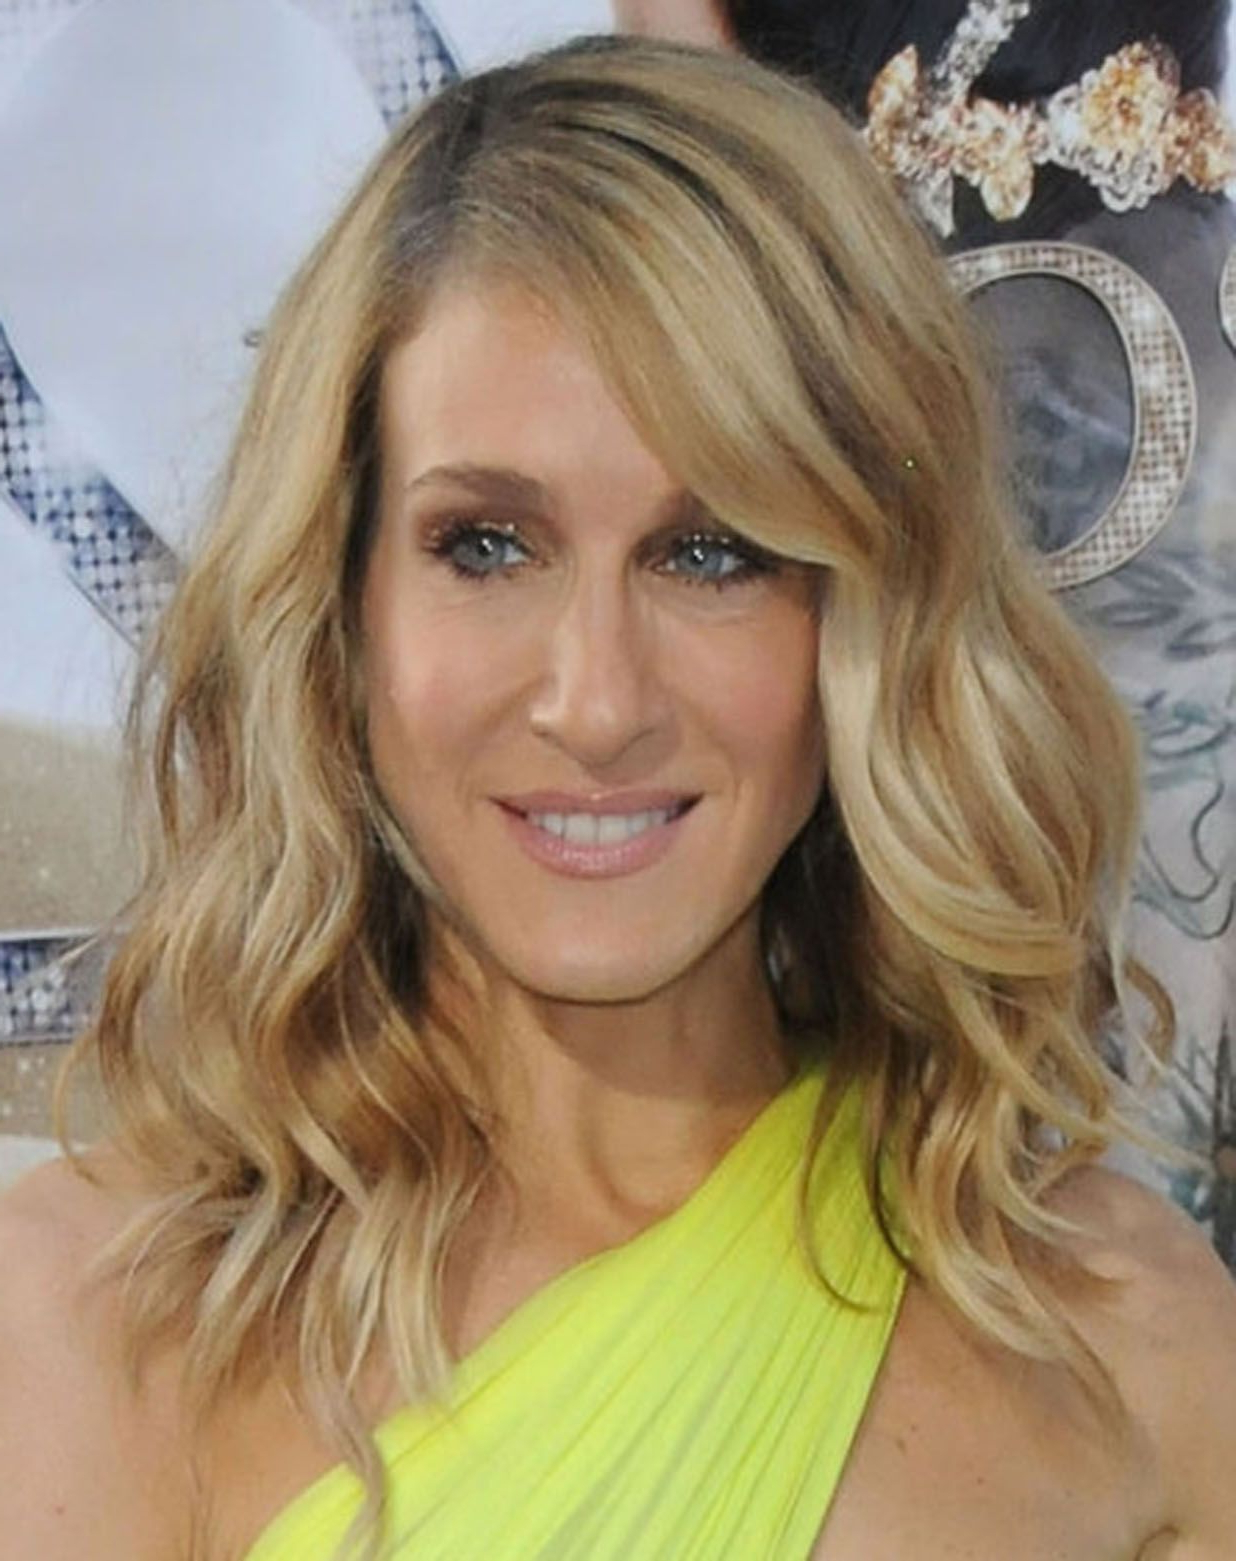 Widely Used Carrie Bradshaw Medium Hairstyles Inside 23 Sarah Jessica Parker Hairstyles Celebrity Sarah Jessica Parker's (View 3 of 20)